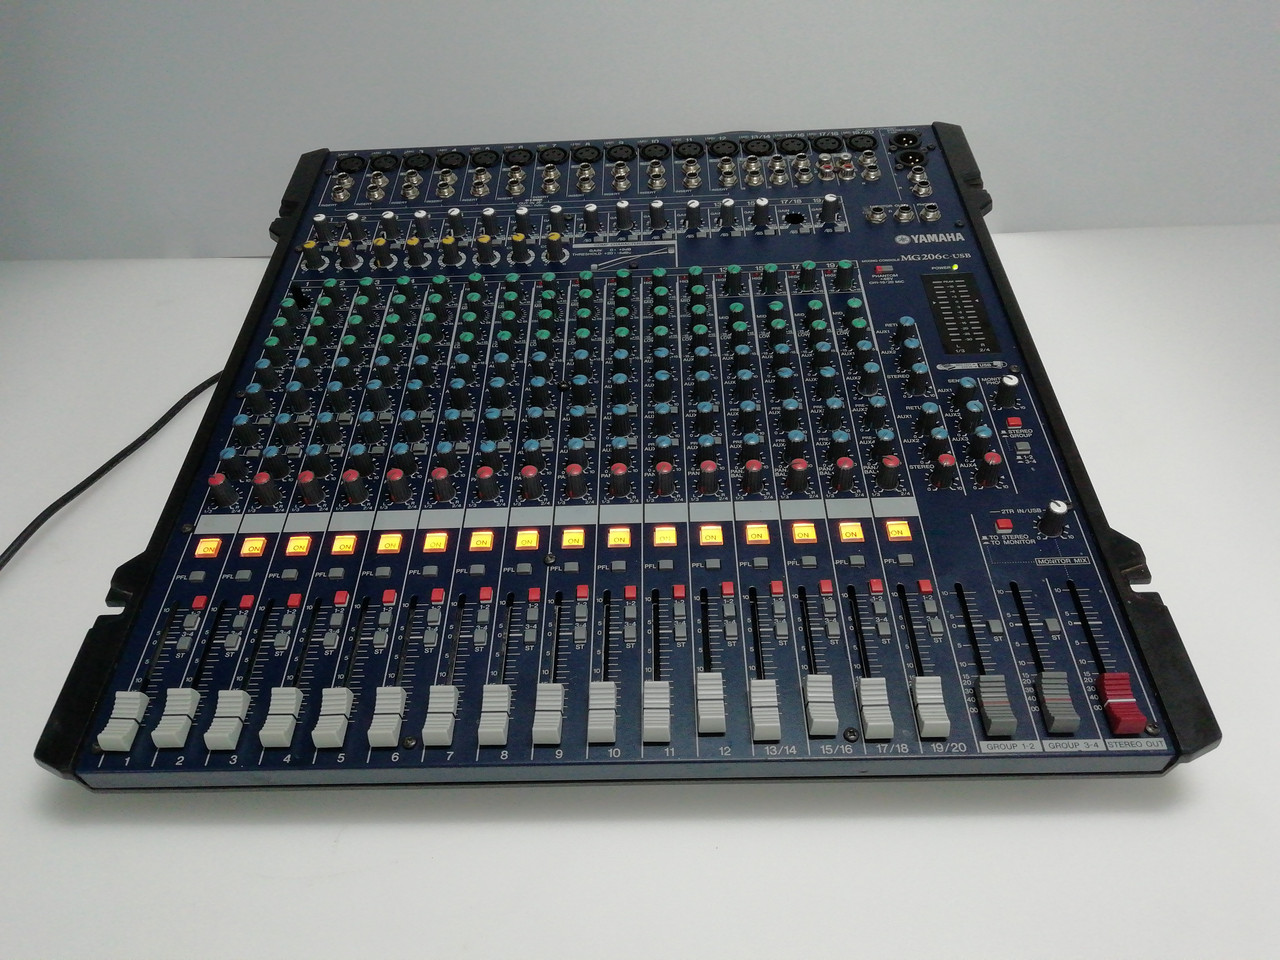 Микшерный пульт YAMAHA MG206C (Dynacord, Soundcraft)